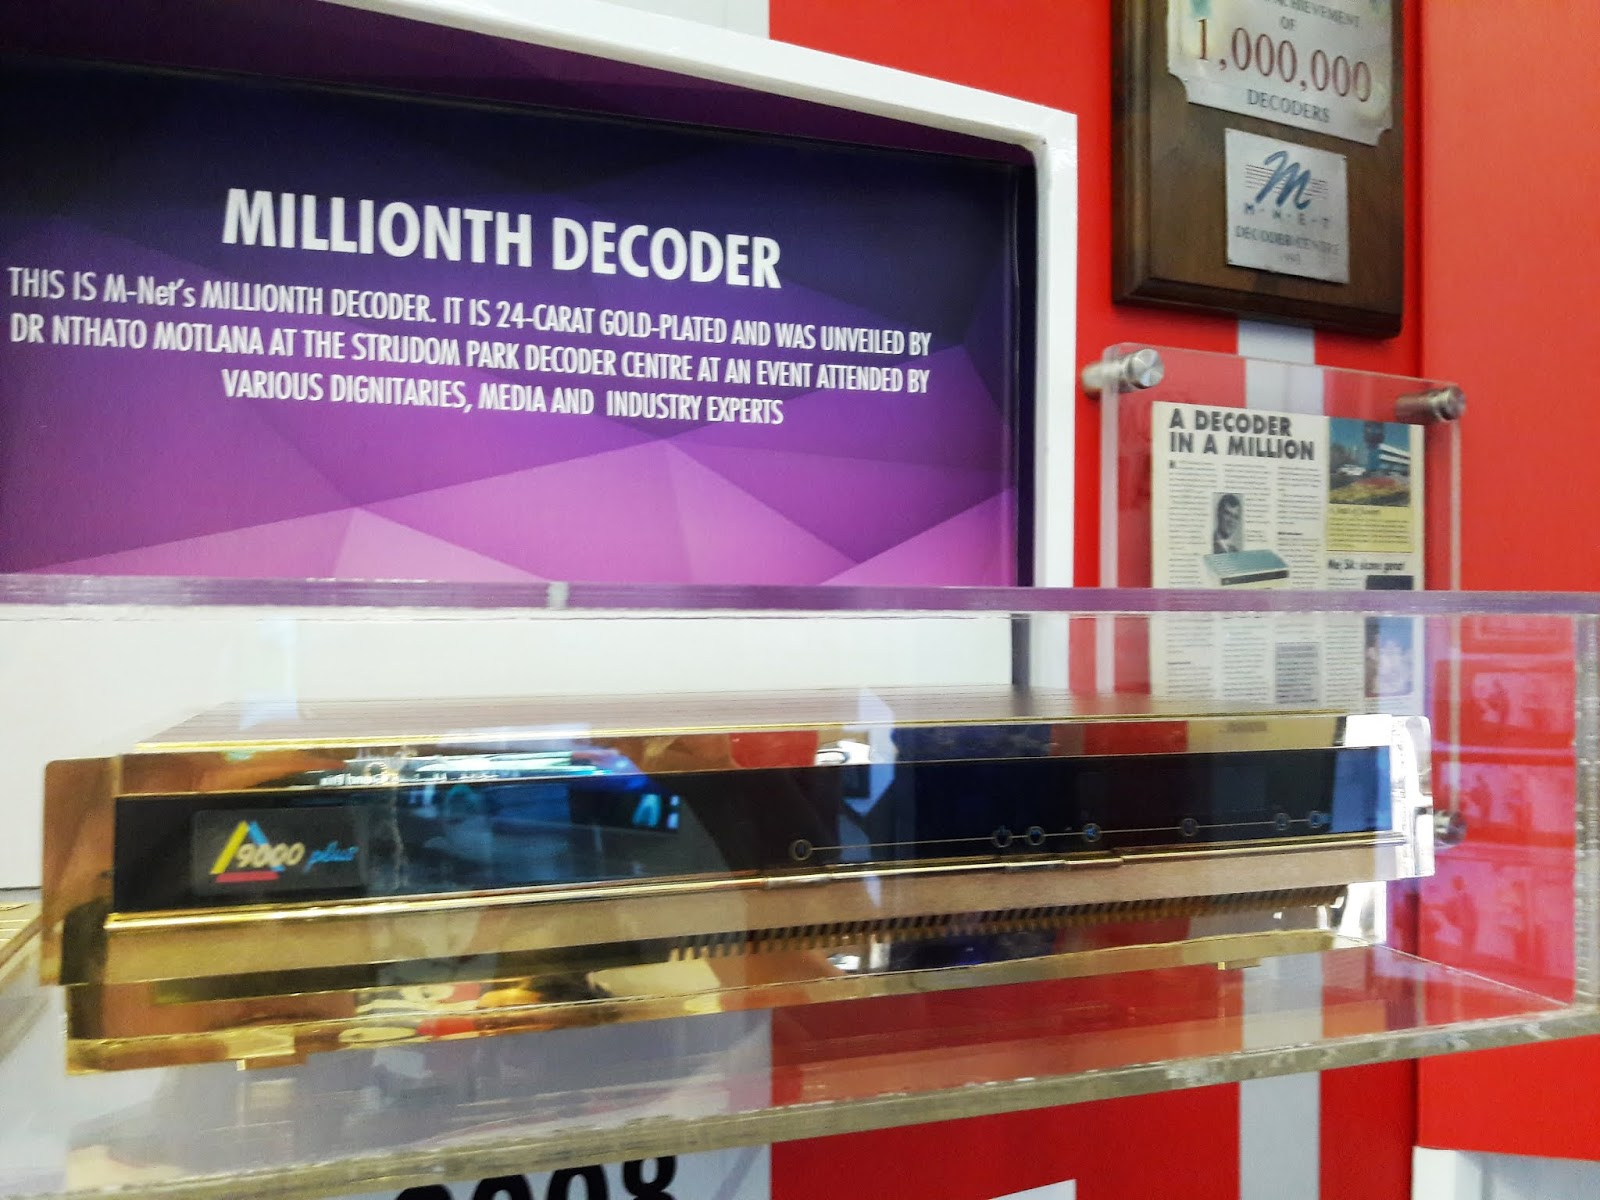 TV with Thinus: There's an amazing M-Net golden decoder locked in a